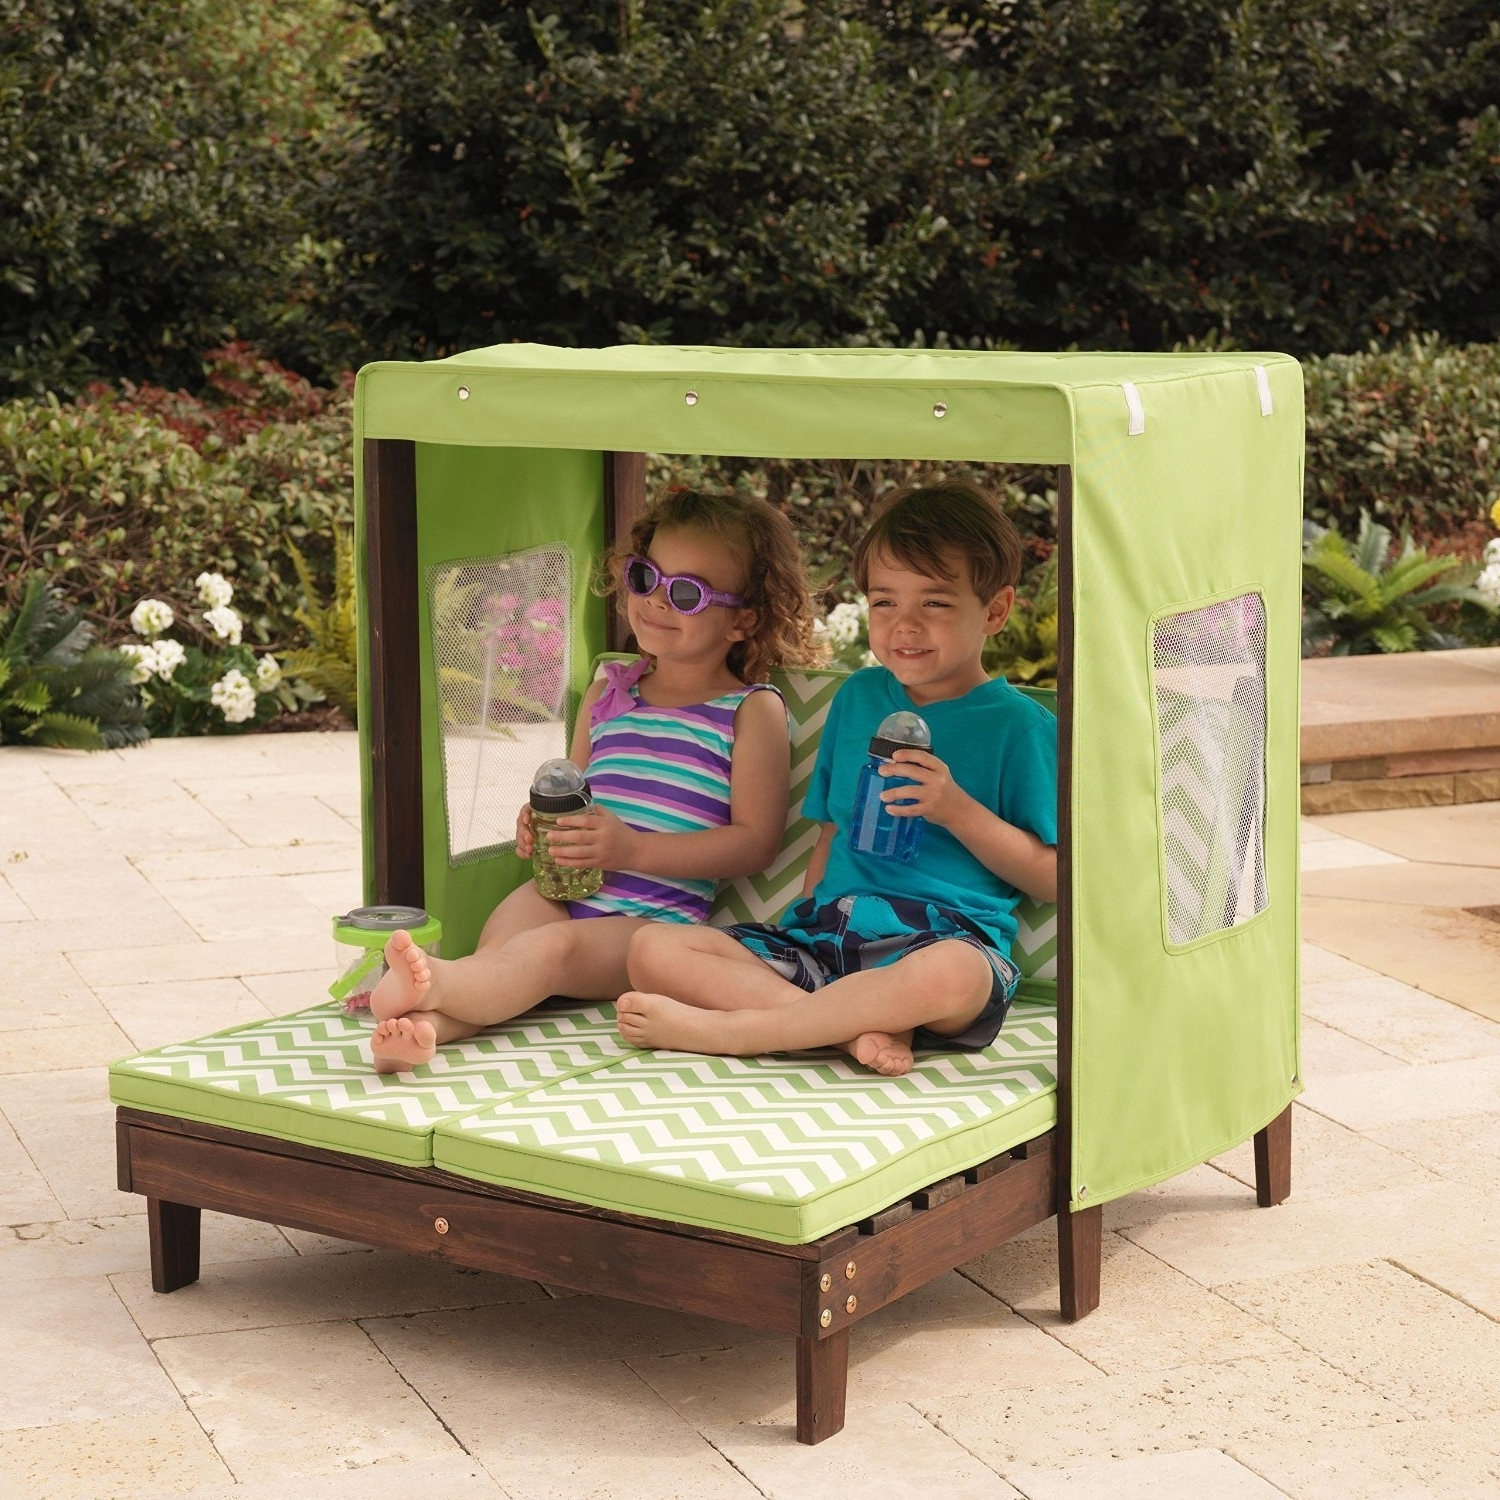 Best And Newest Outdoor Chaise Lounge Chairs With Canopy Throughout Amazon: Kidkraft Outdoor Double Chaise Lounge Chair With (View 13 of 15)